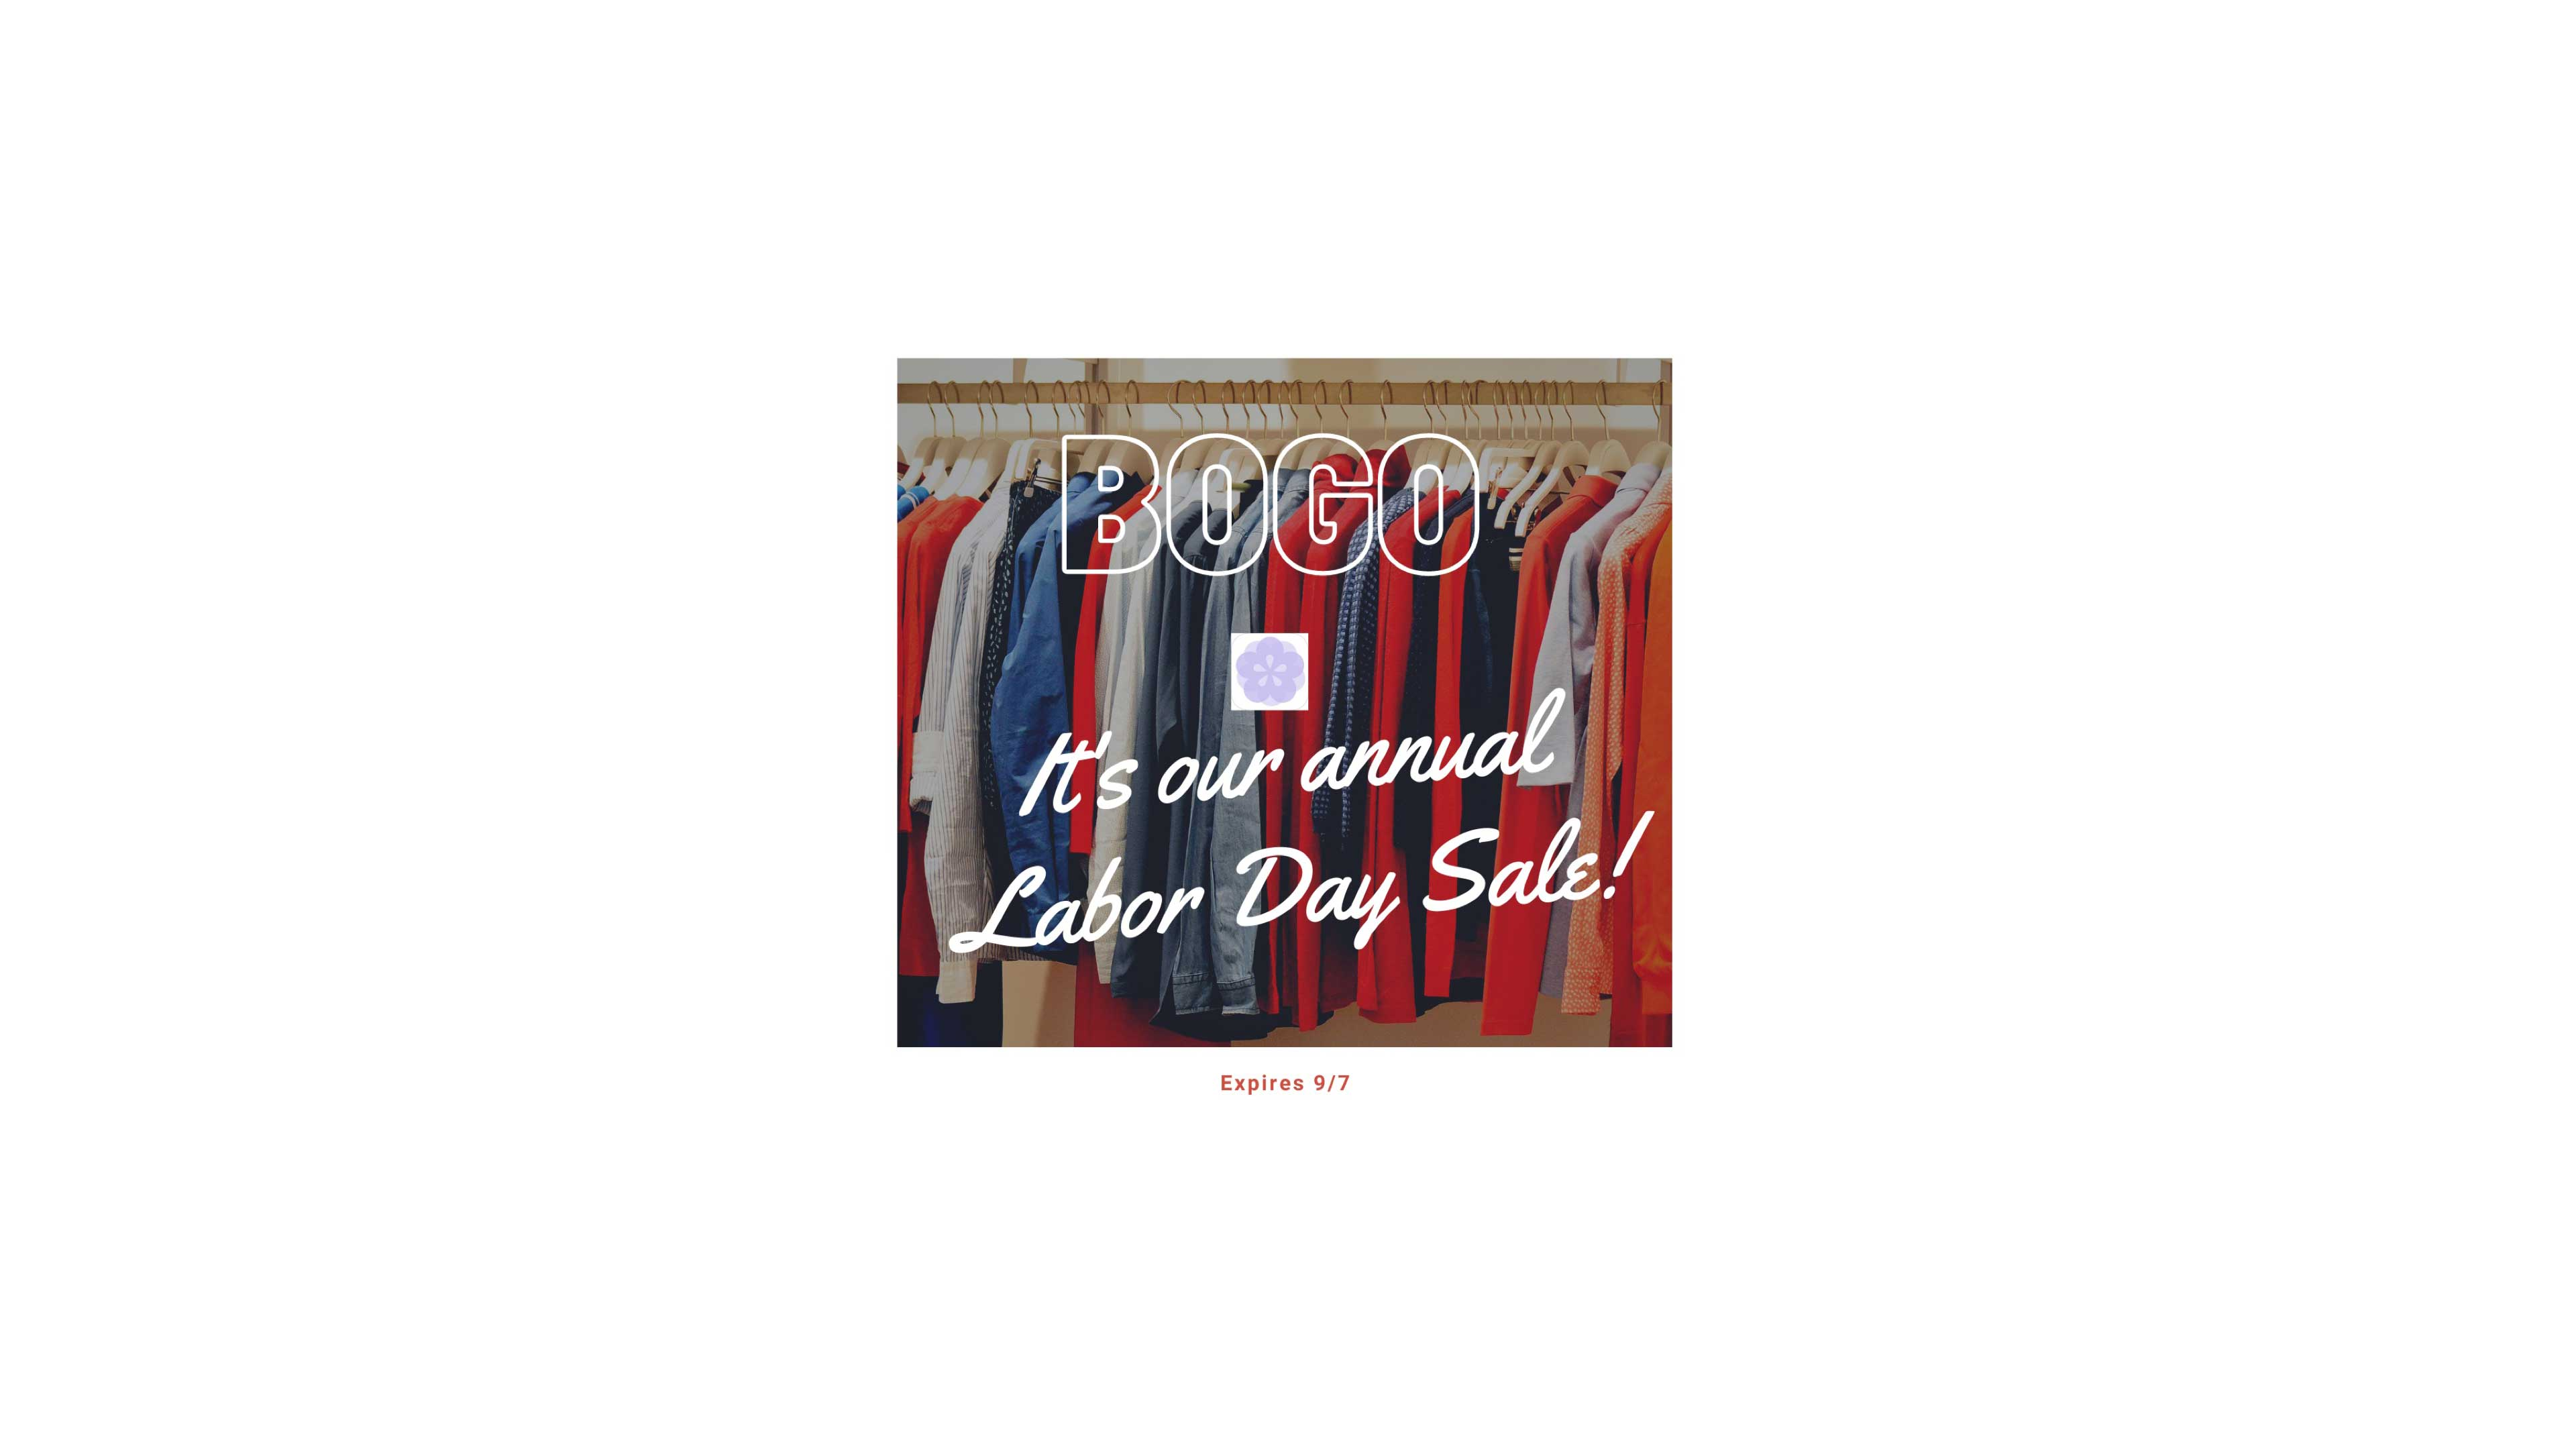 Buy One Get One Labor Day Sale